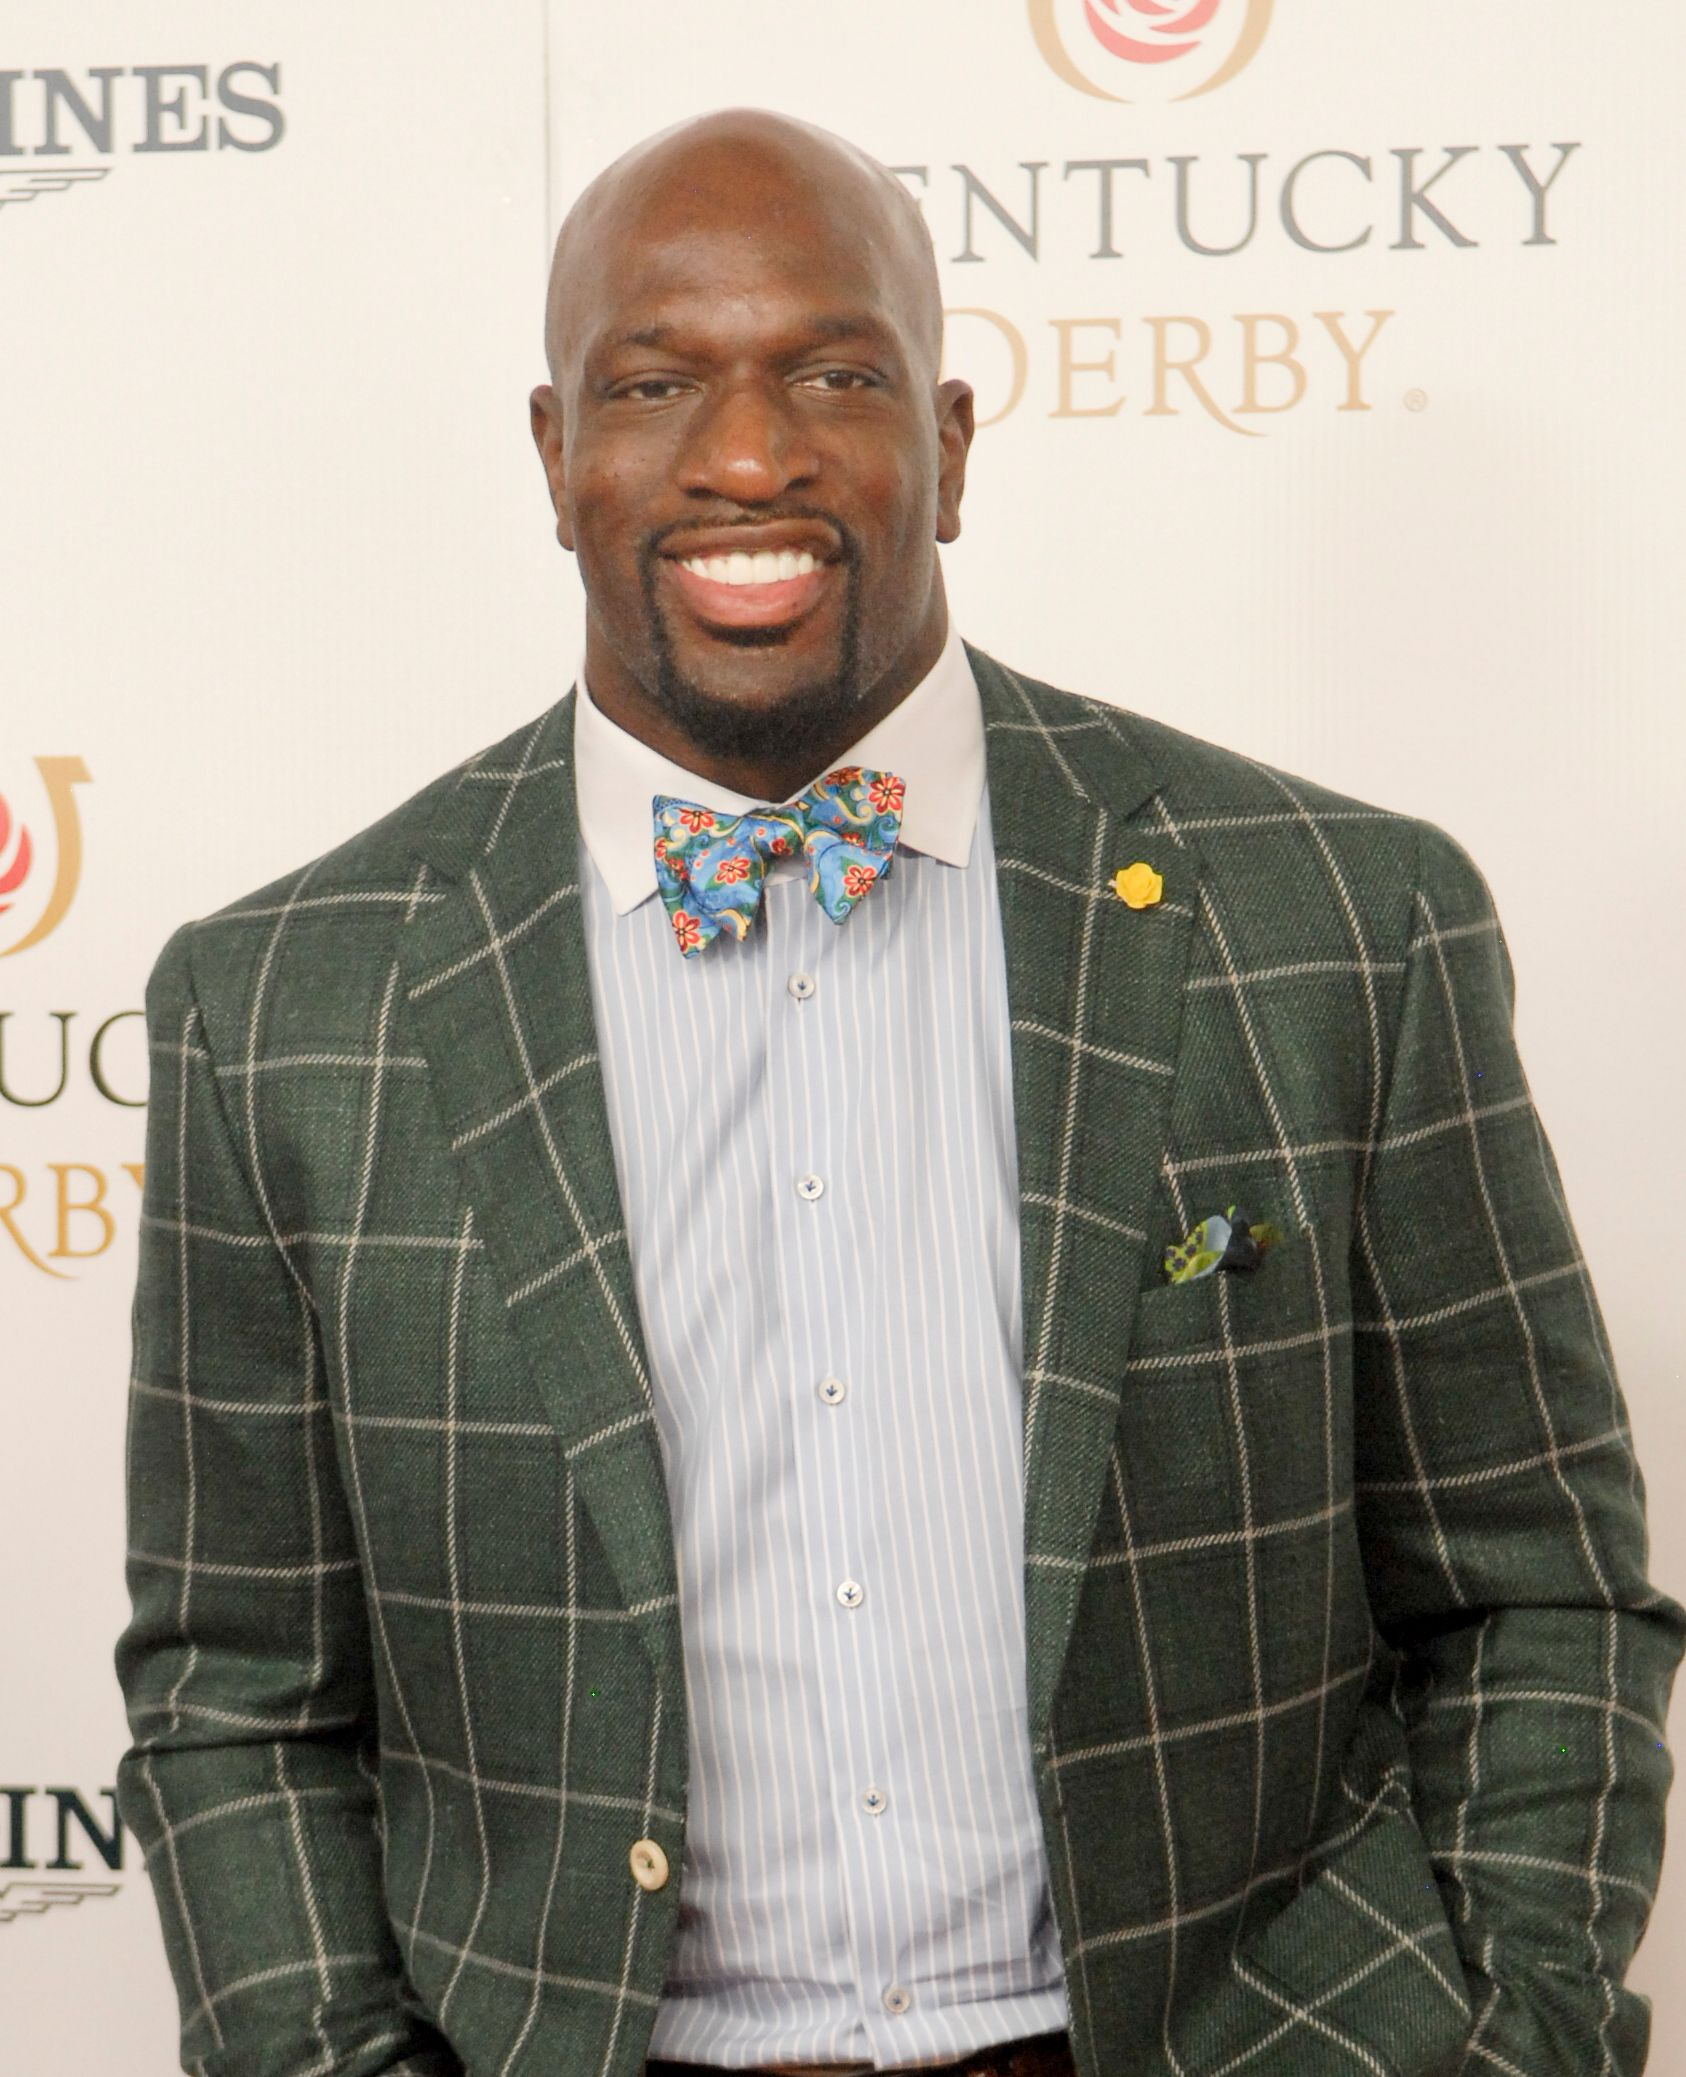 WWE Superstar Titus O'Neal walks the red carpet at the Kentucky Derby on May 4, 2019 Derby Celebrity 20.